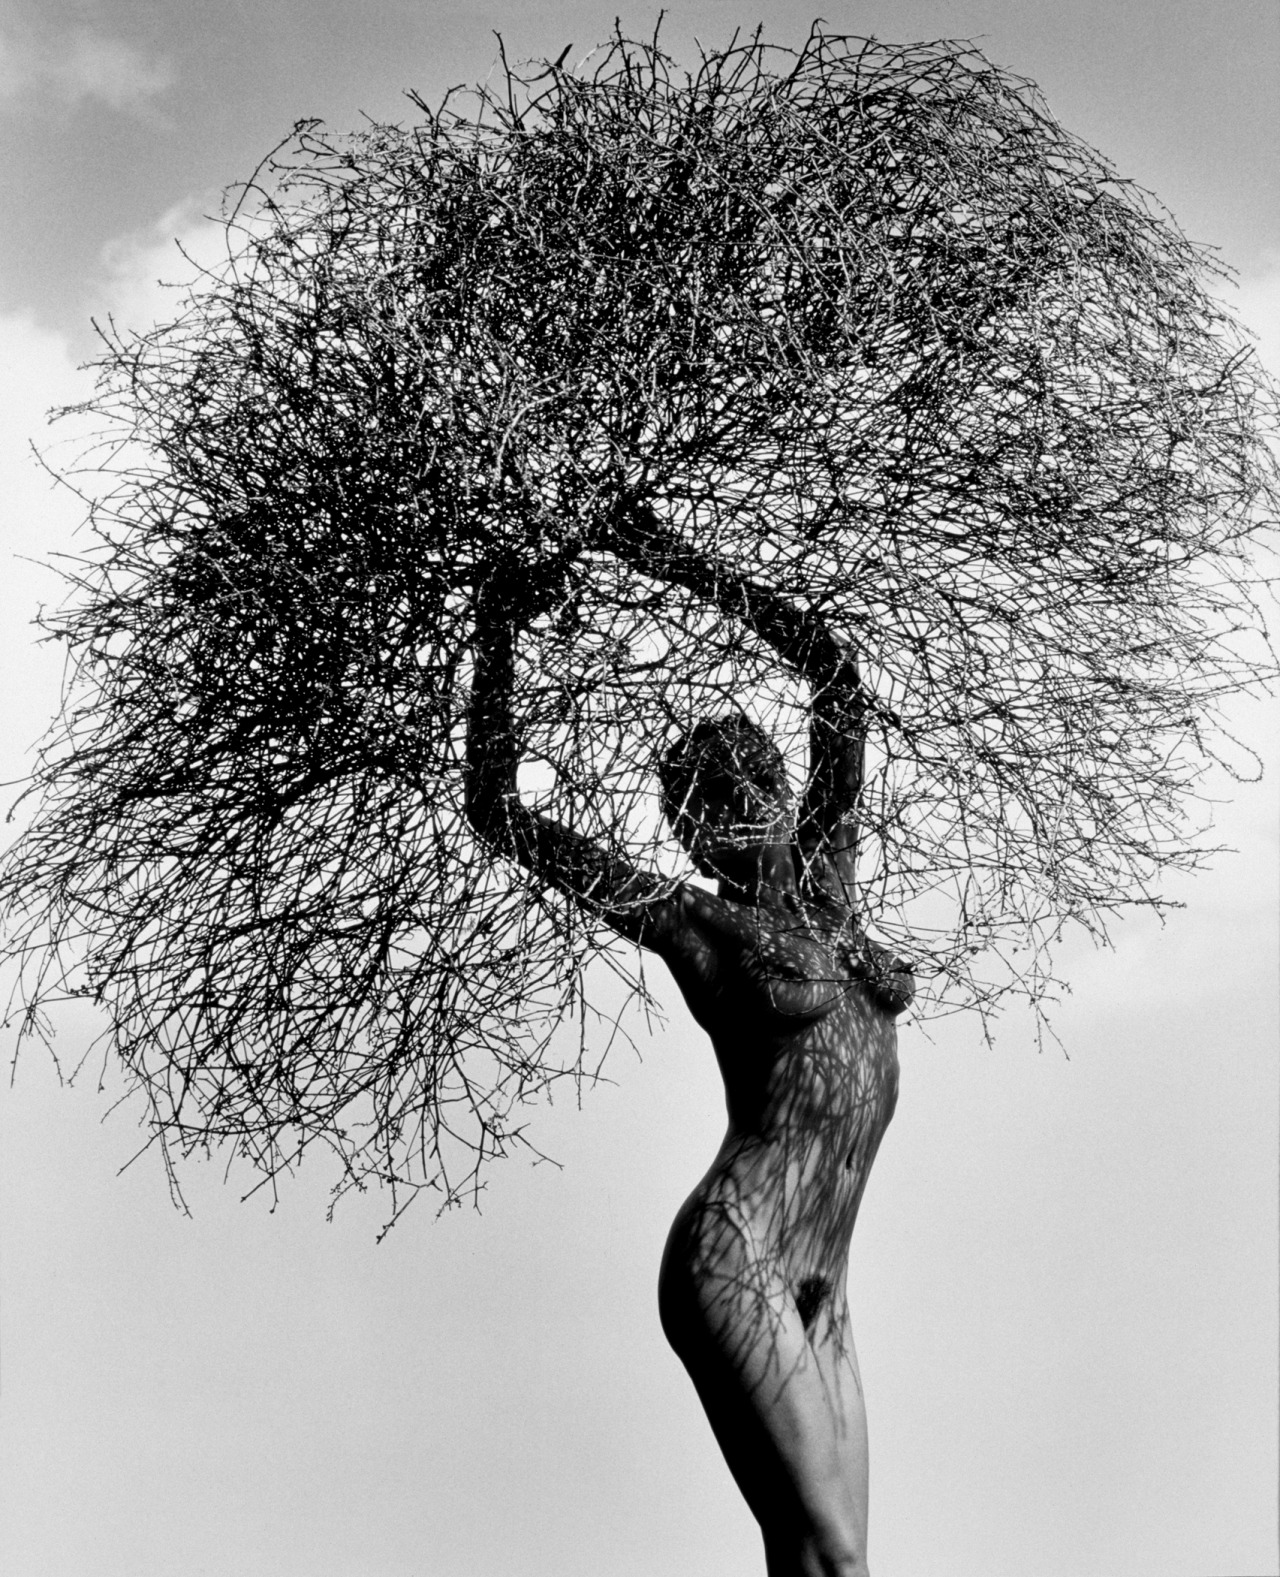 Herb Ritts - Neith With Tumbleweed